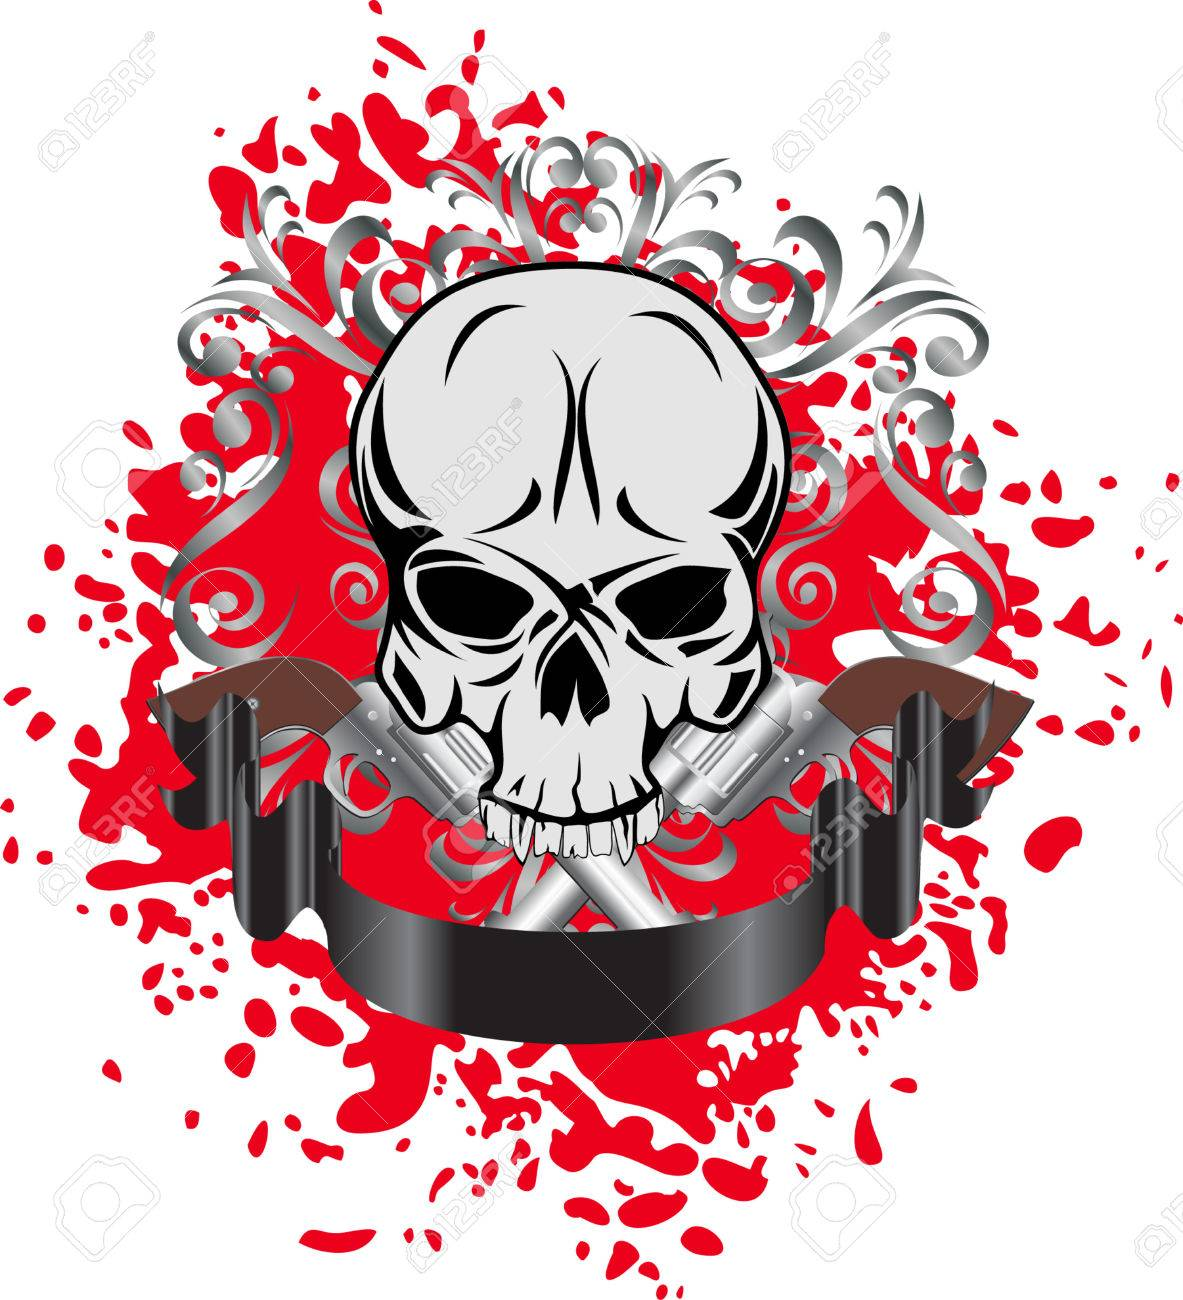 Vector image of skull with two revolvers and patterns Stock Vector - 4875728